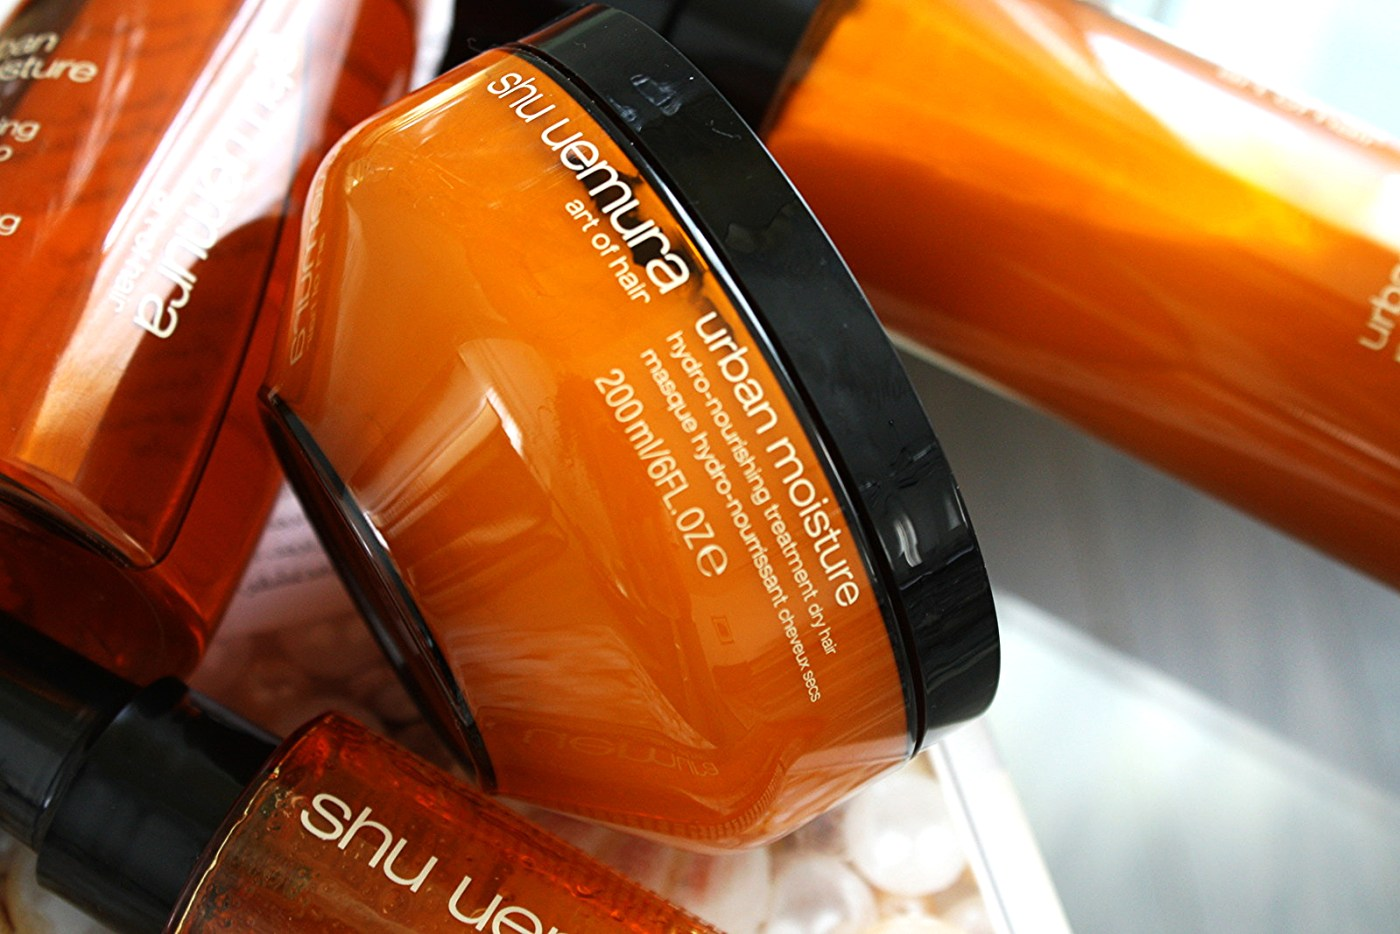 SHU UEMURA ART OF HAIR URBAN MOISTURE COLLECTION